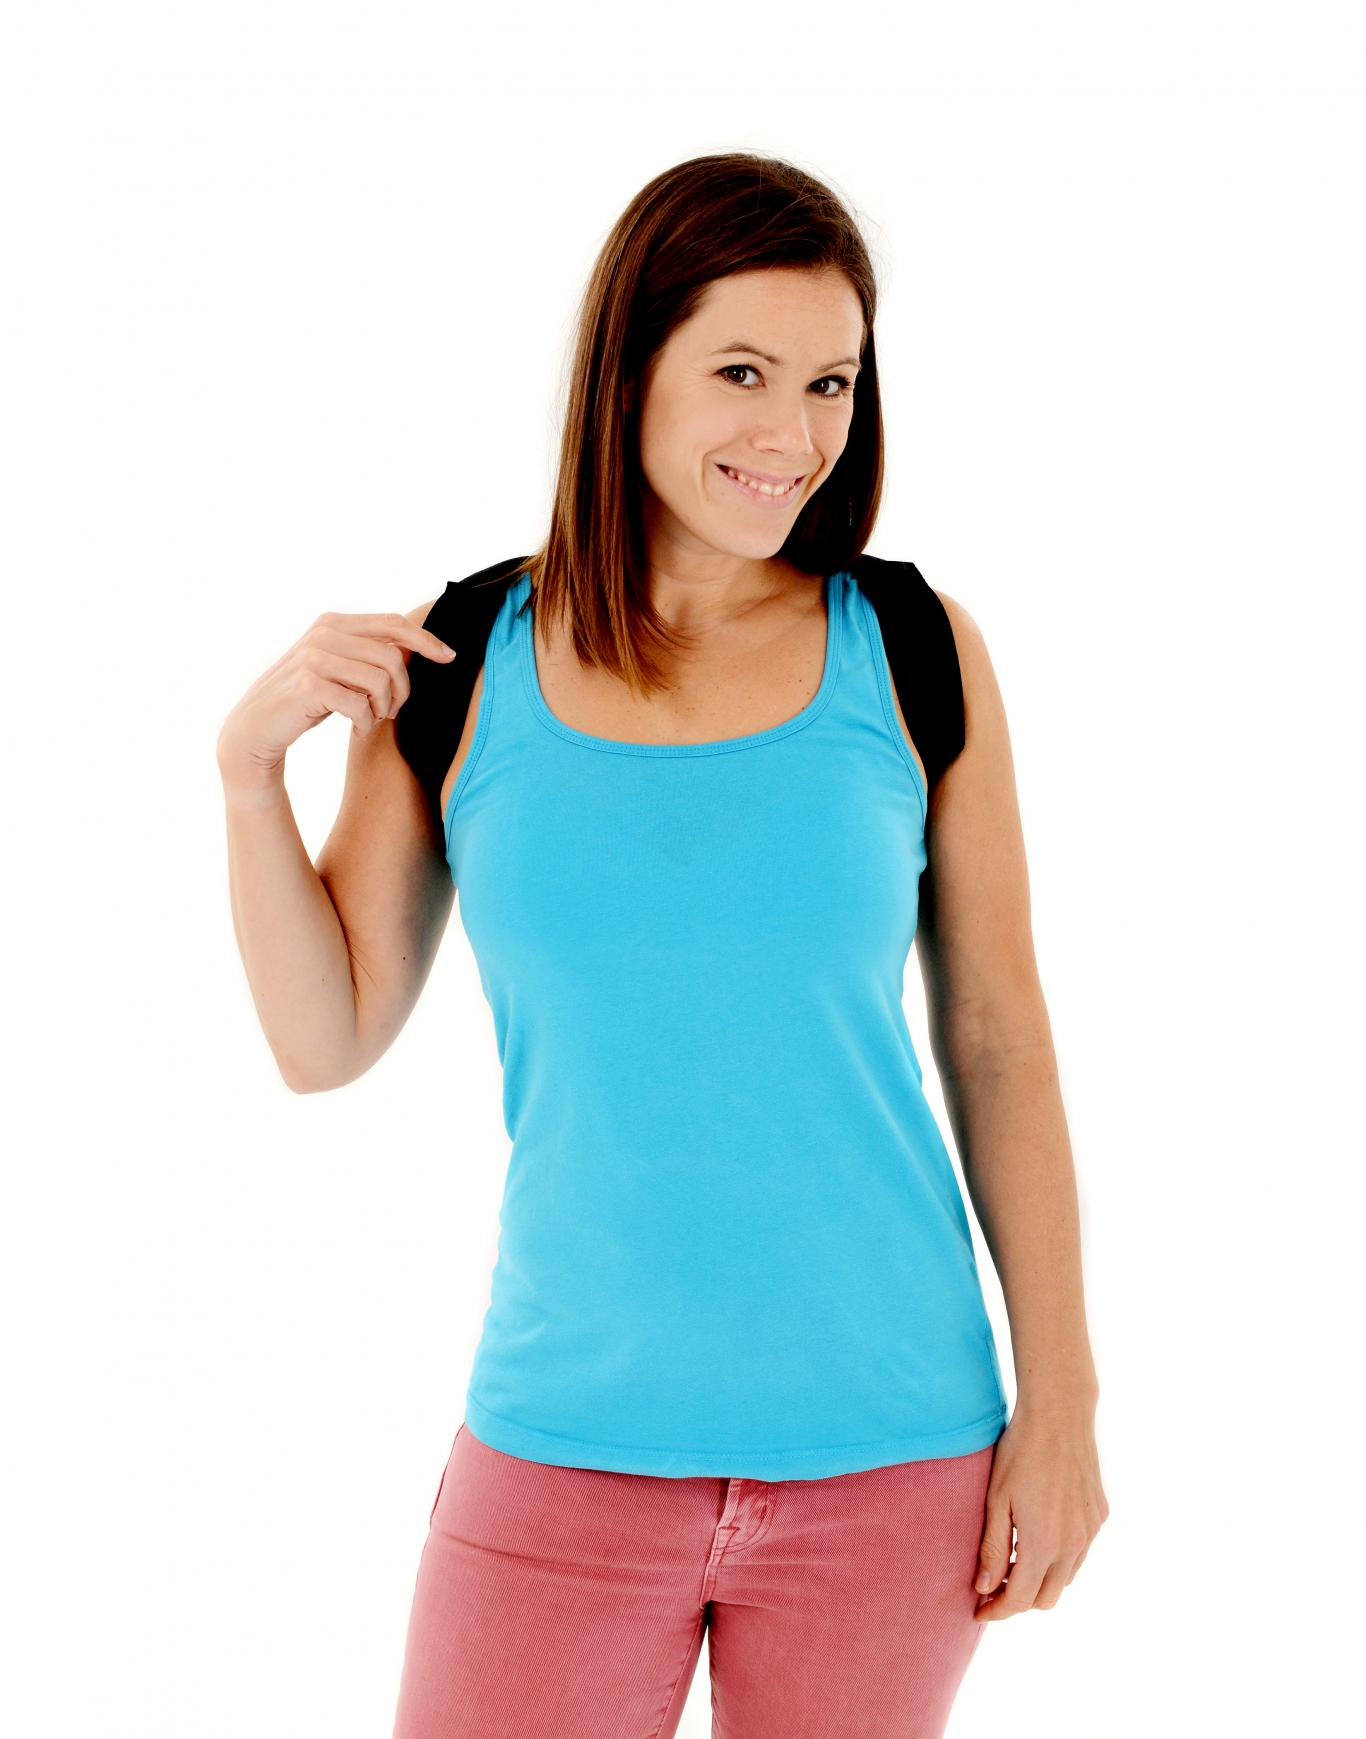 perfect posture kit woman wearing posture corrector